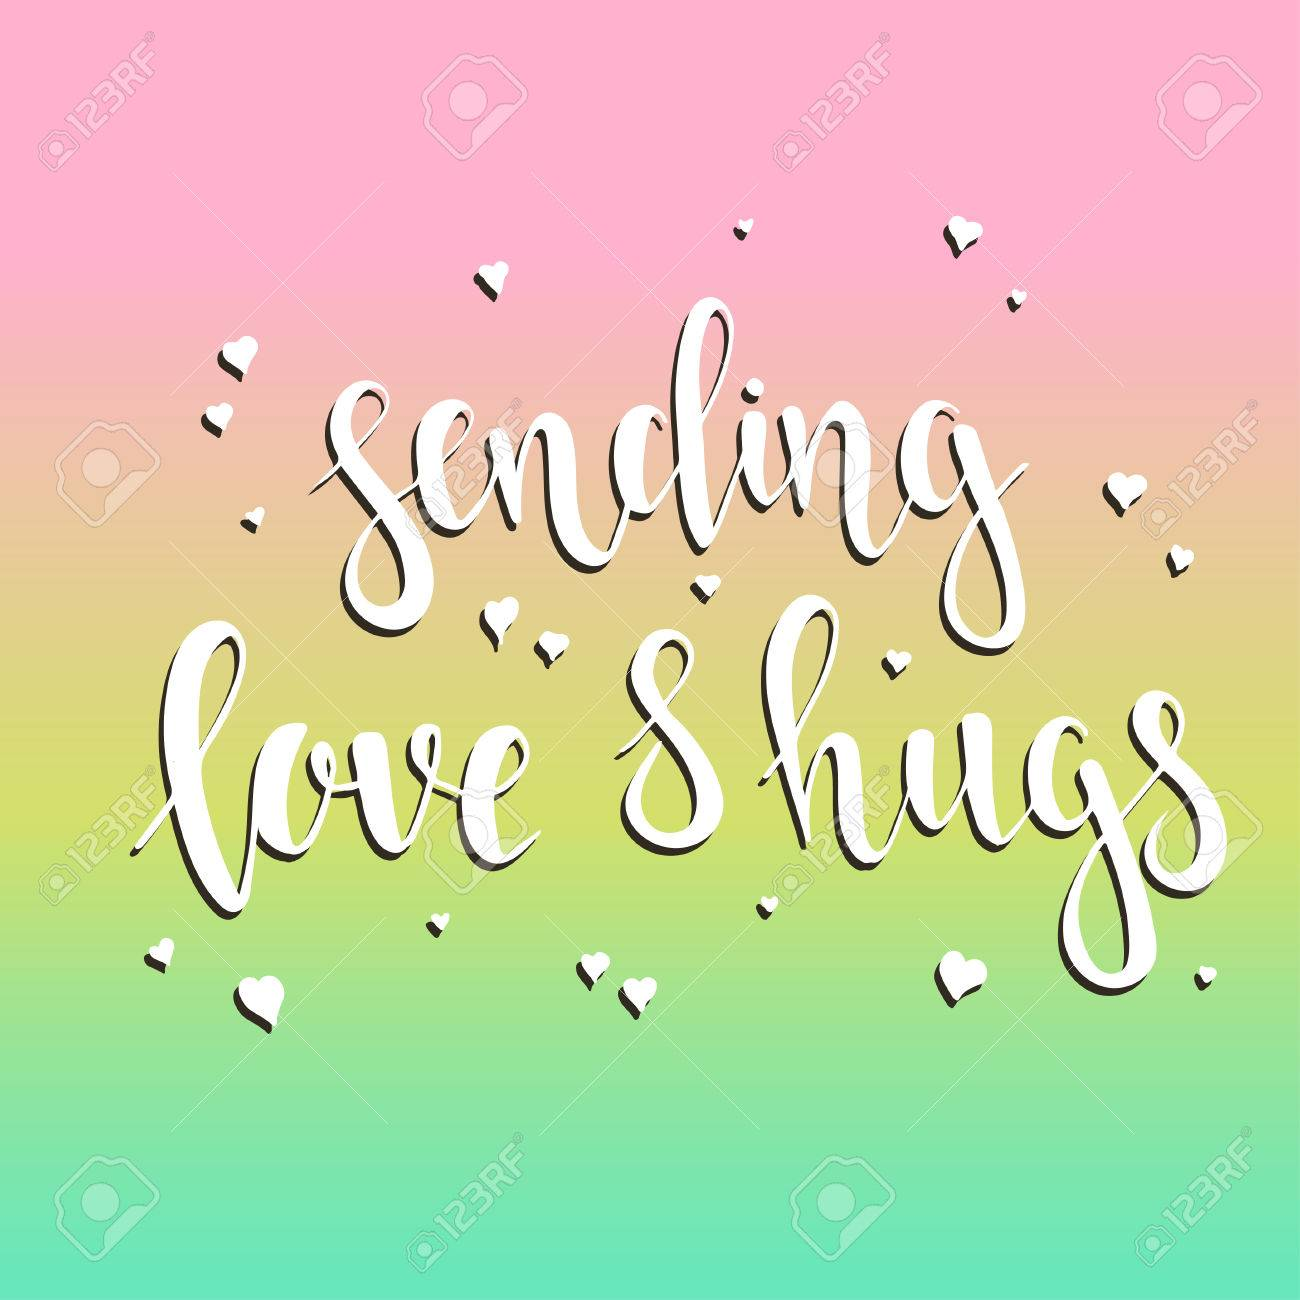 57158493-sending-love-and-hugs-t-shirt-hand-lettered-calligraphic-design-inspirational-vector-typography-vect.jpg